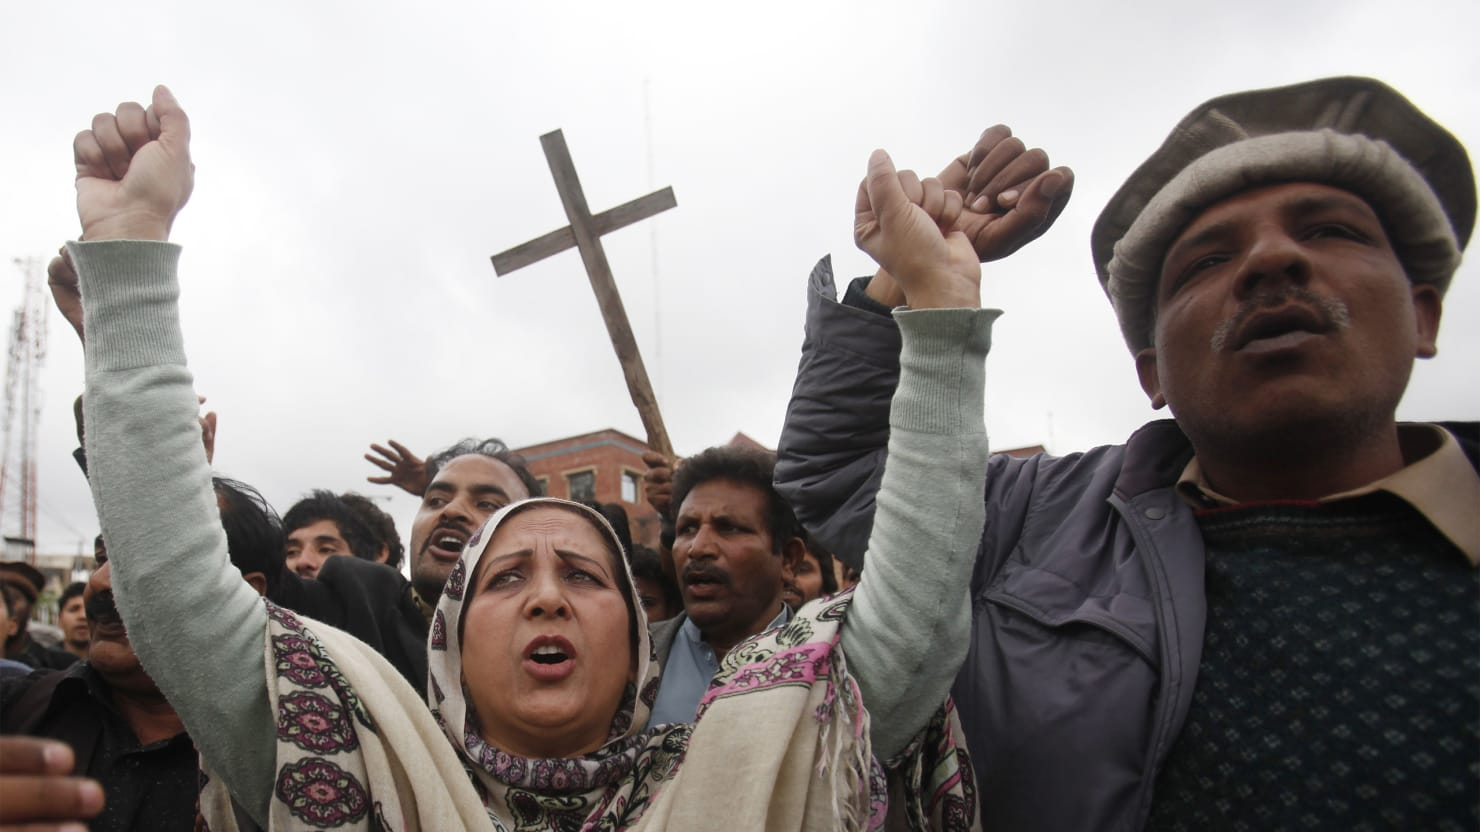 Christians Are Still Persecuted Around the World. Here's ... | 1480 x 832 jpeg 99kB